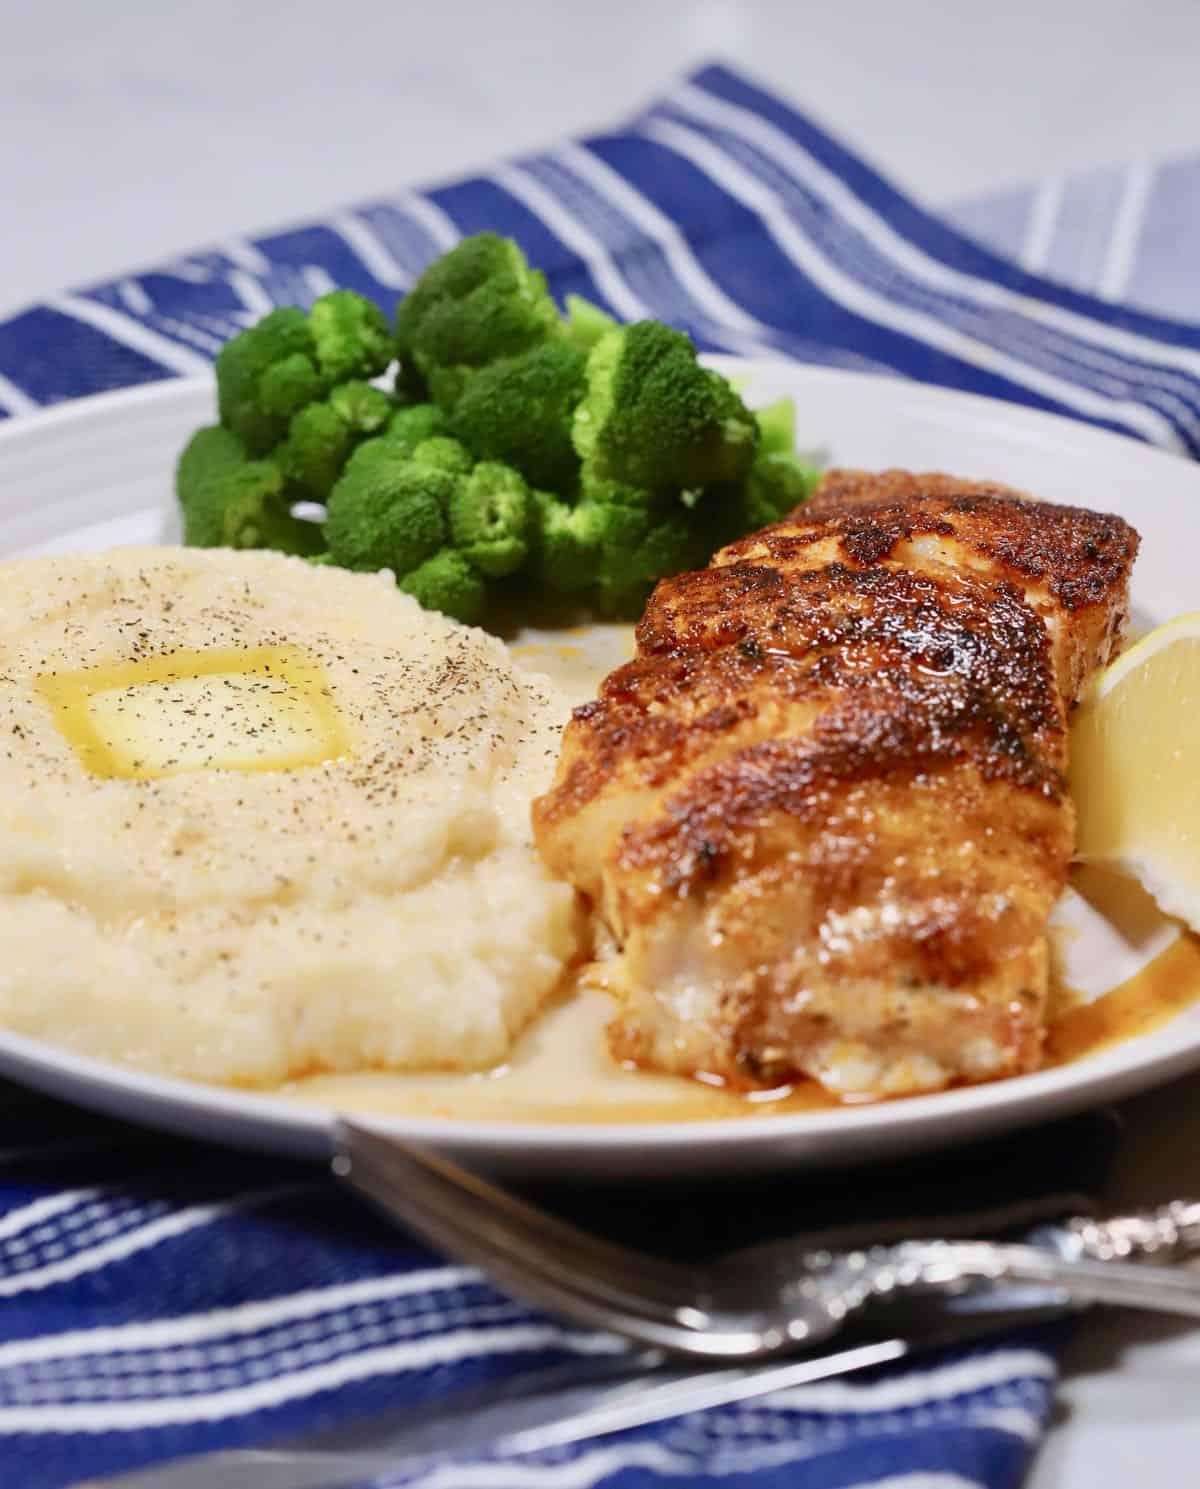 Blackened grouper fillet with grits and broccoli on a plate.